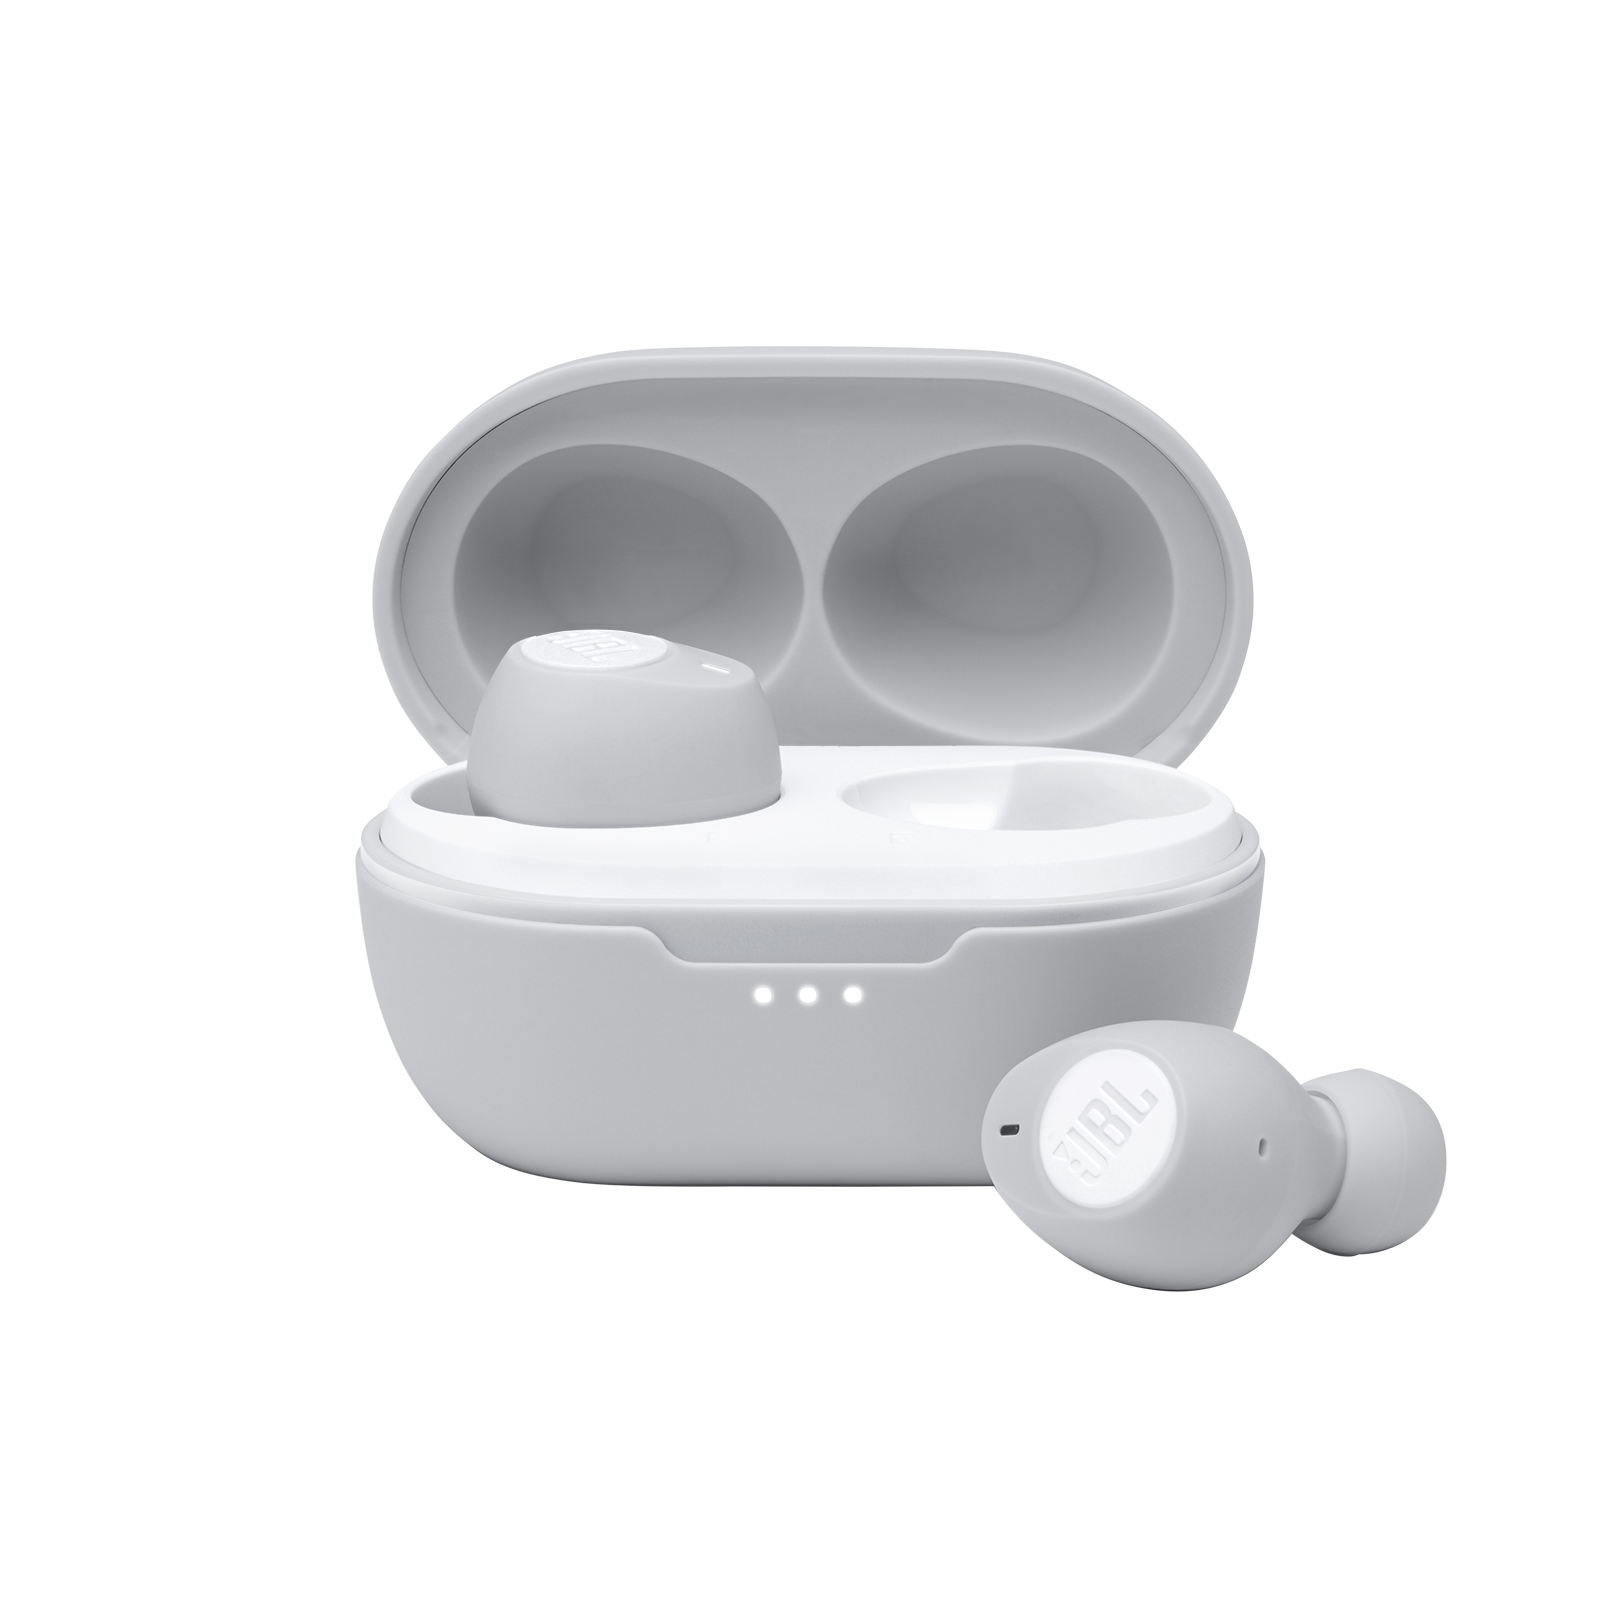 JBL Tune 115TWS - White - True wireless earbuds - Hero